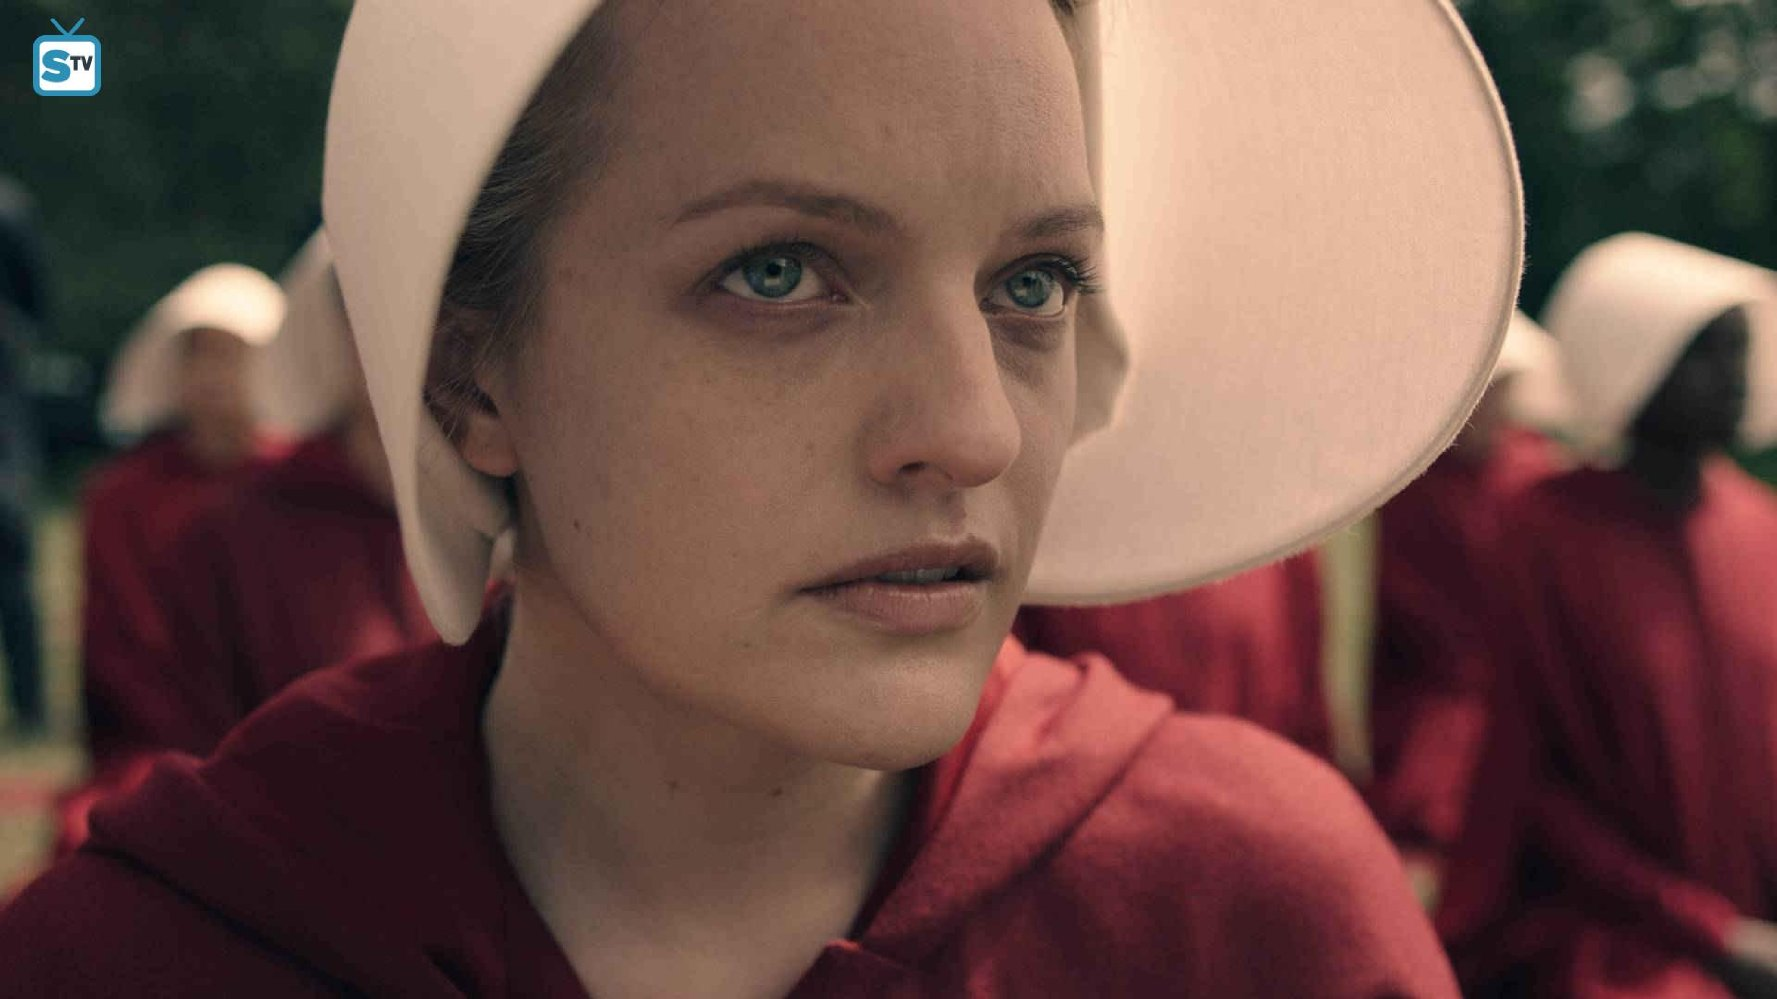 Stop saying that The Handmaid's Tale couldn't happen here – it's frighteningly realistic